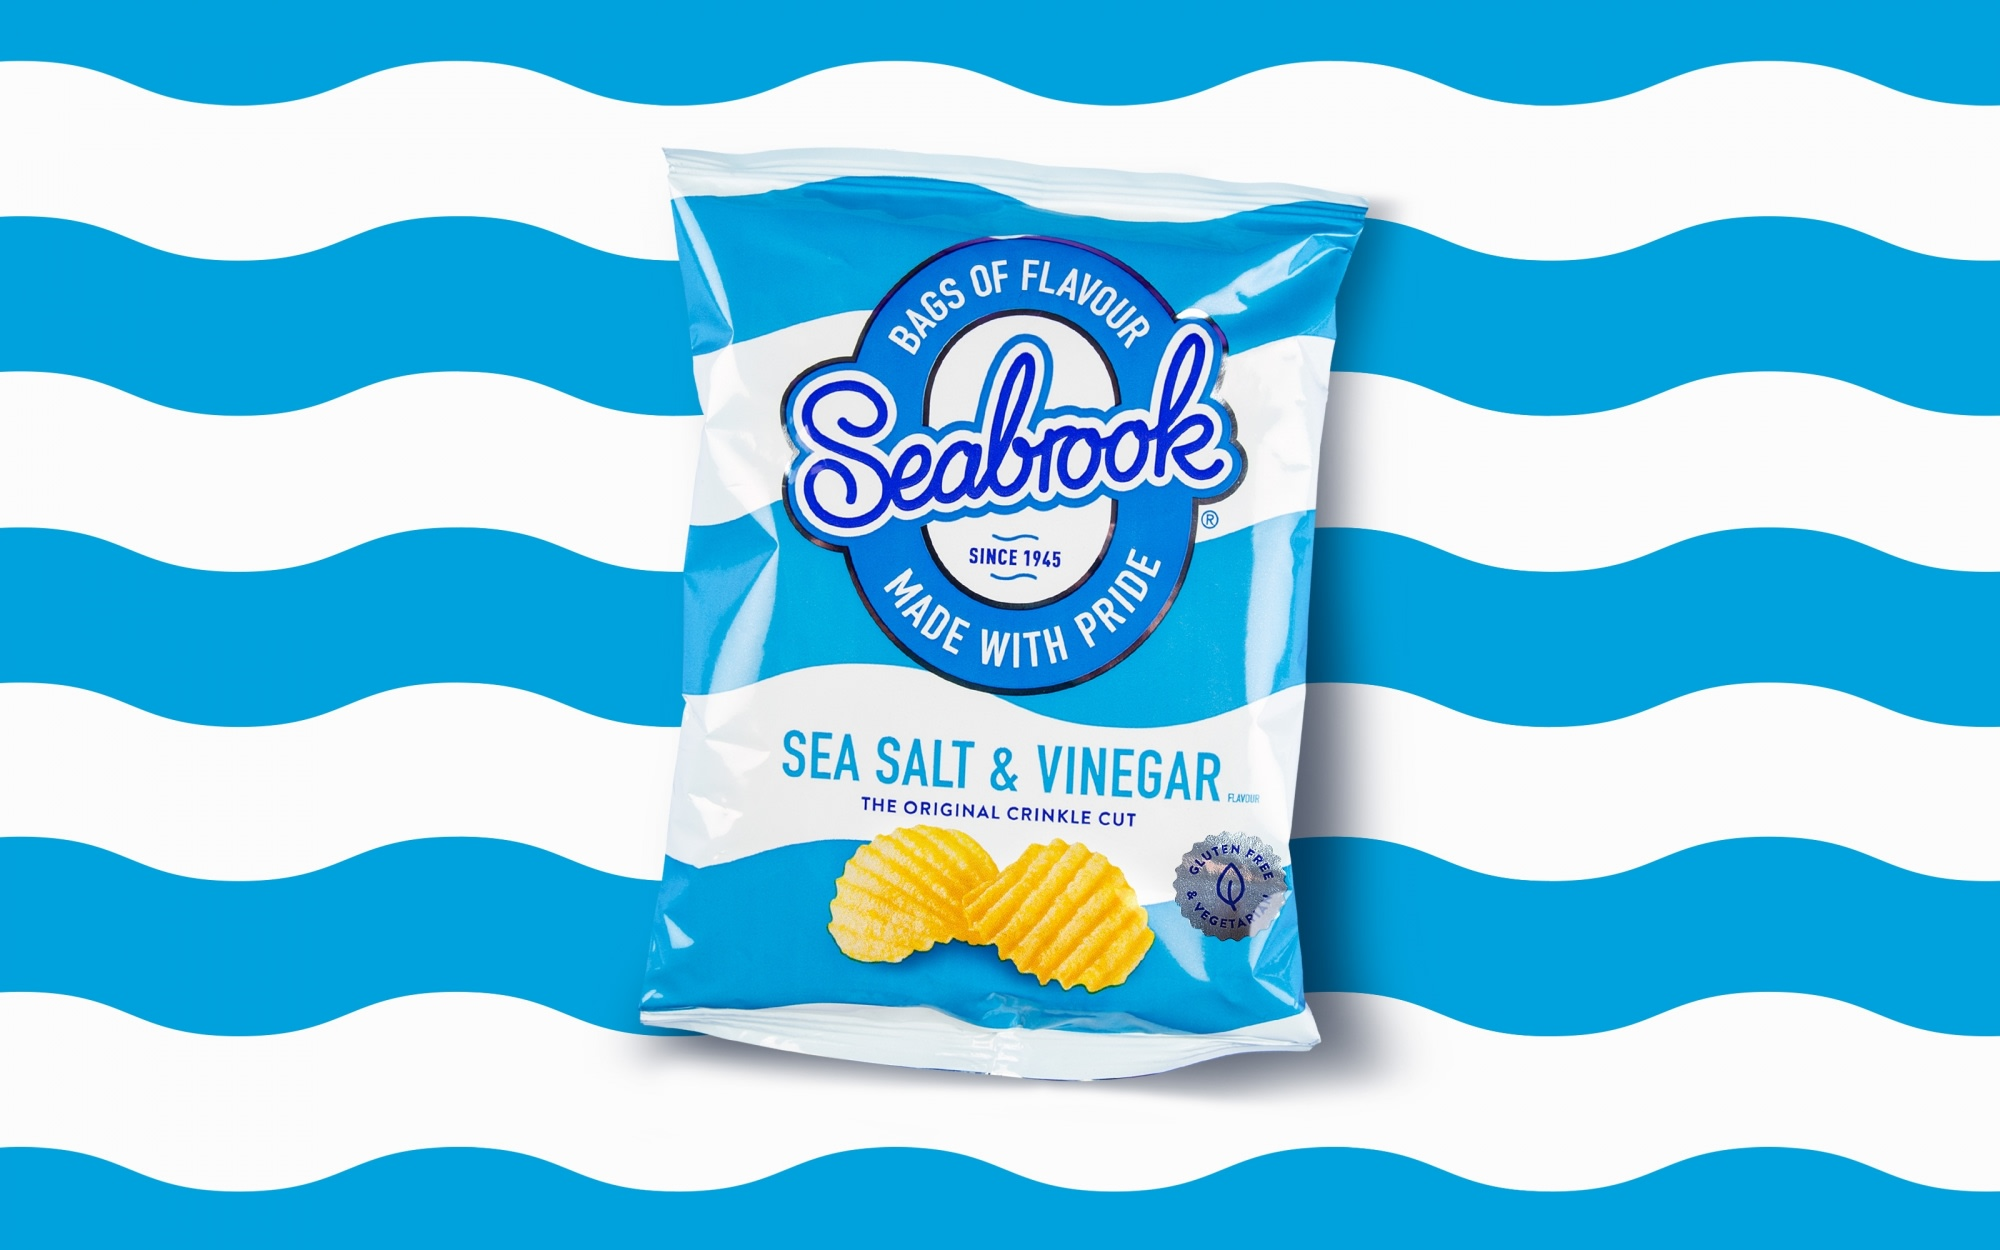 Seabrook Vinegar